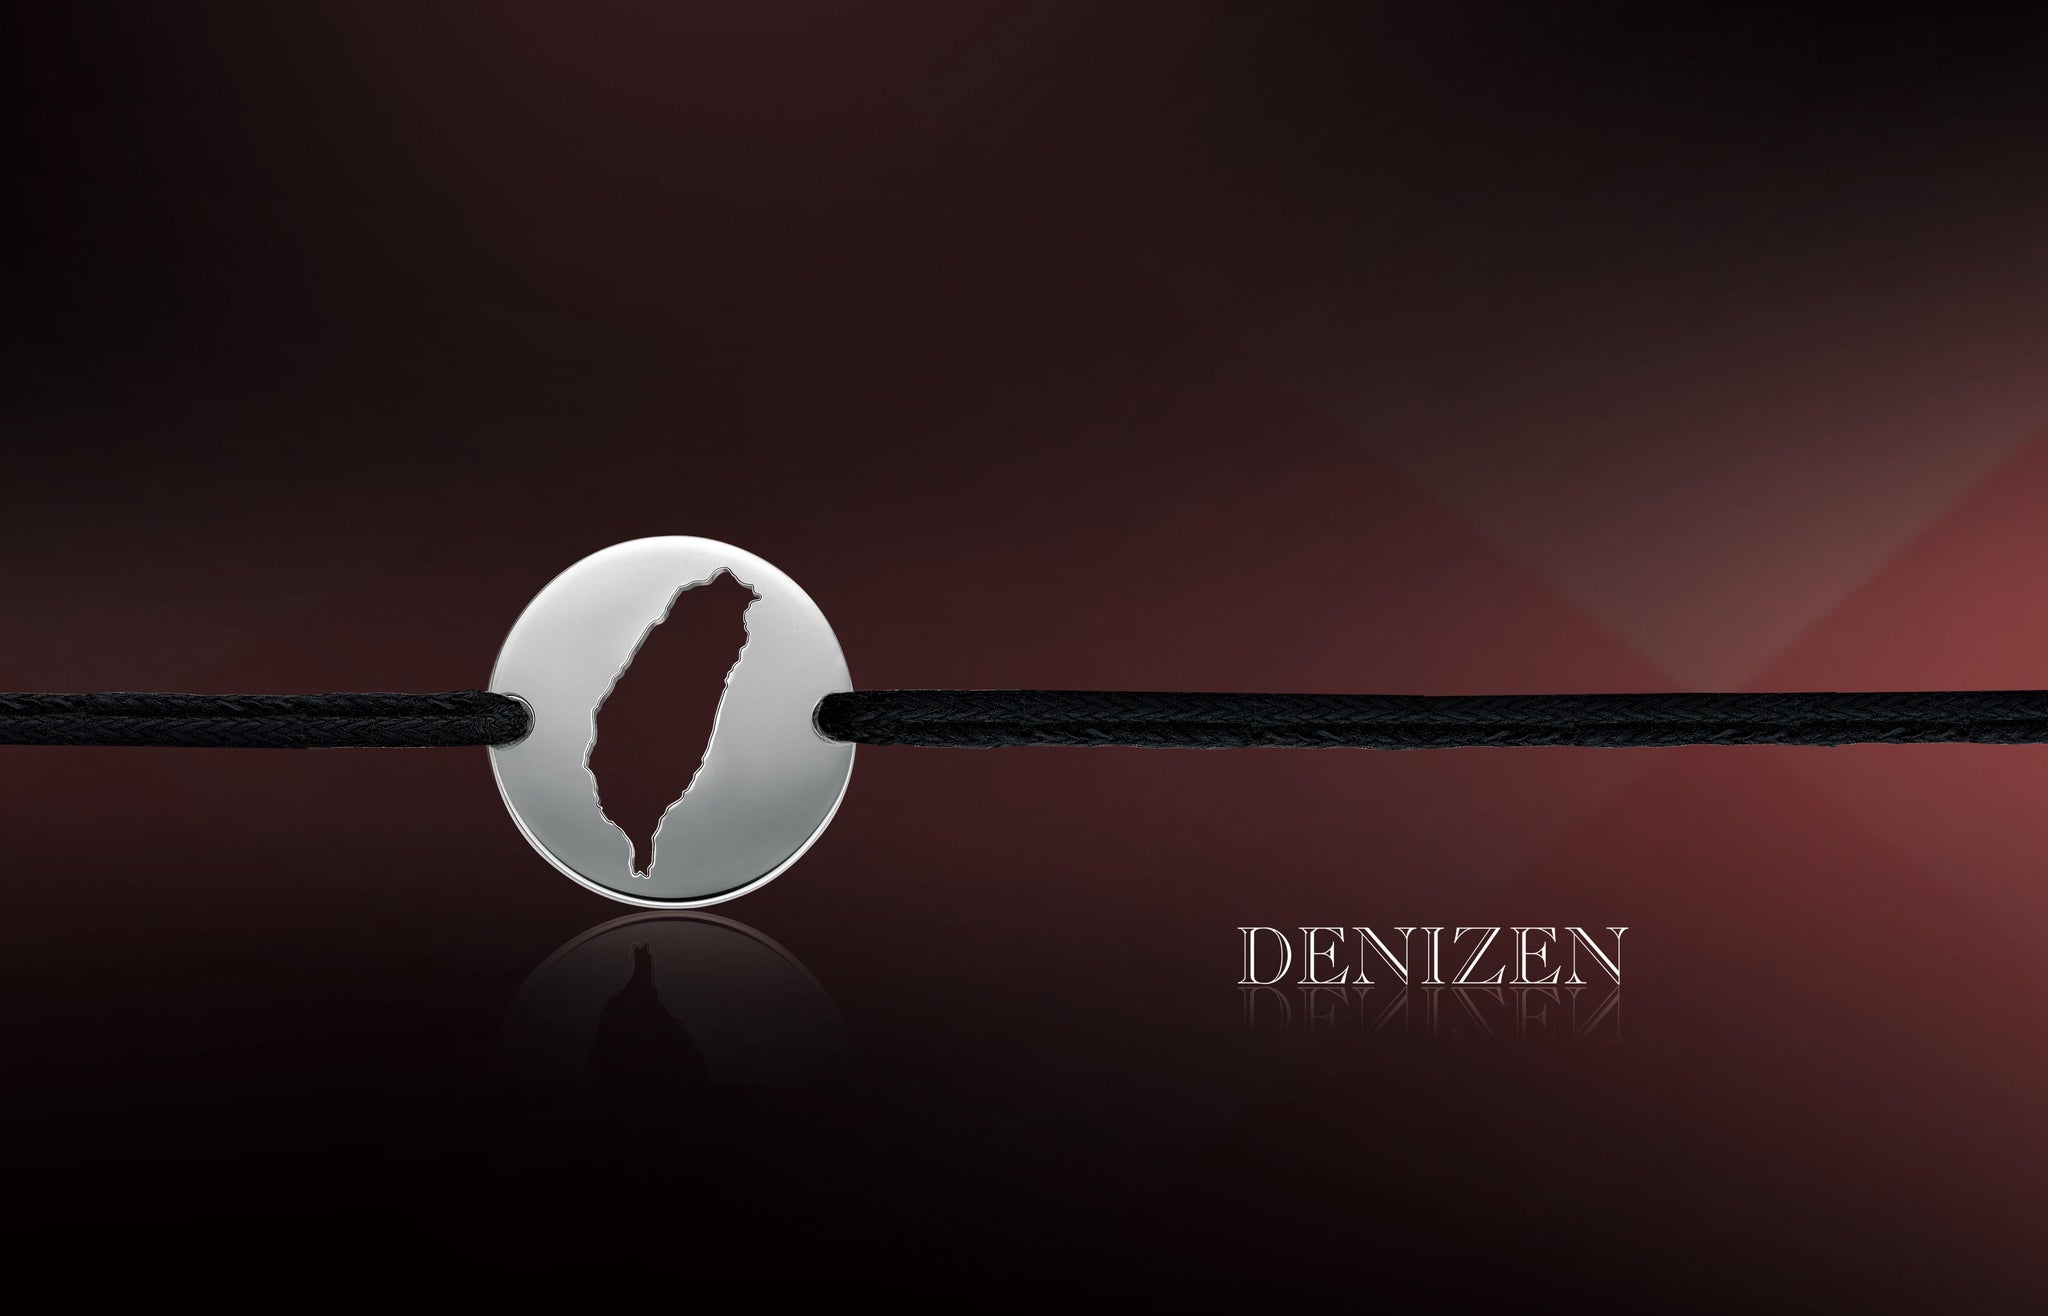 Denizen bracelet of Taiwan